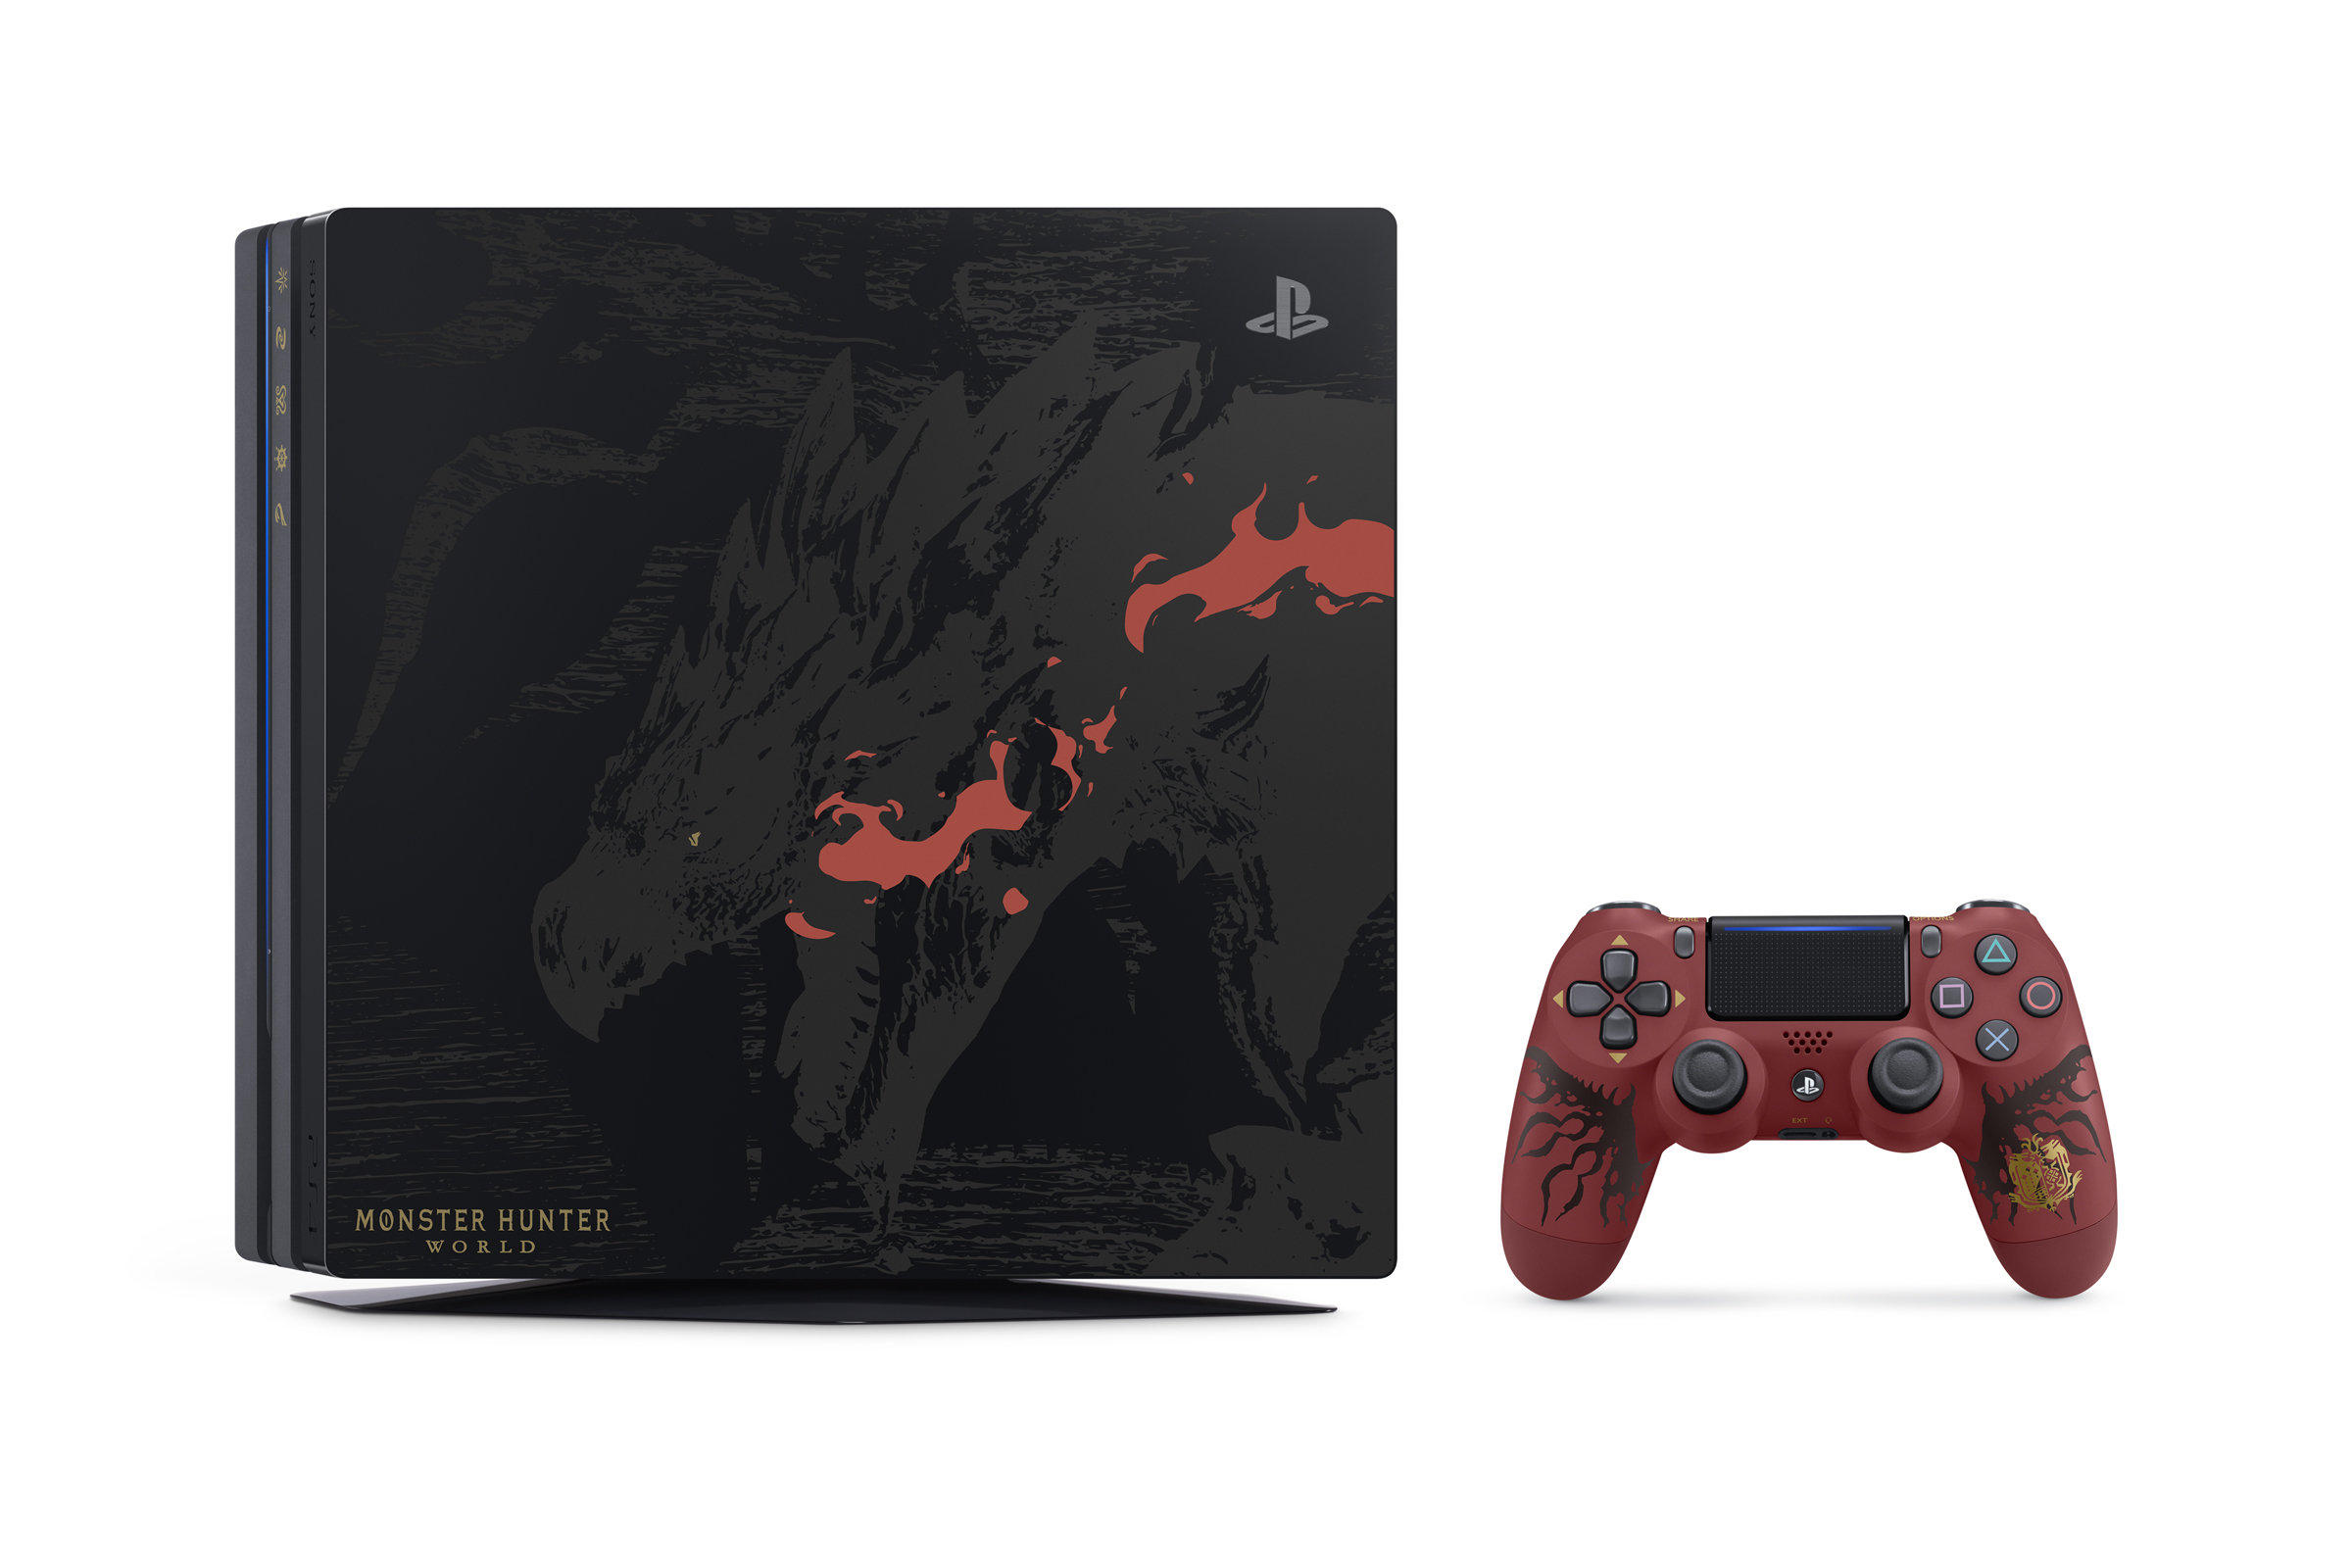 PS4 MONSTERHUNTERWORLD 02 1 - This PlayStation 4 Pro Monster Hunter: World Rathalos Edition is what occupies our mind right now